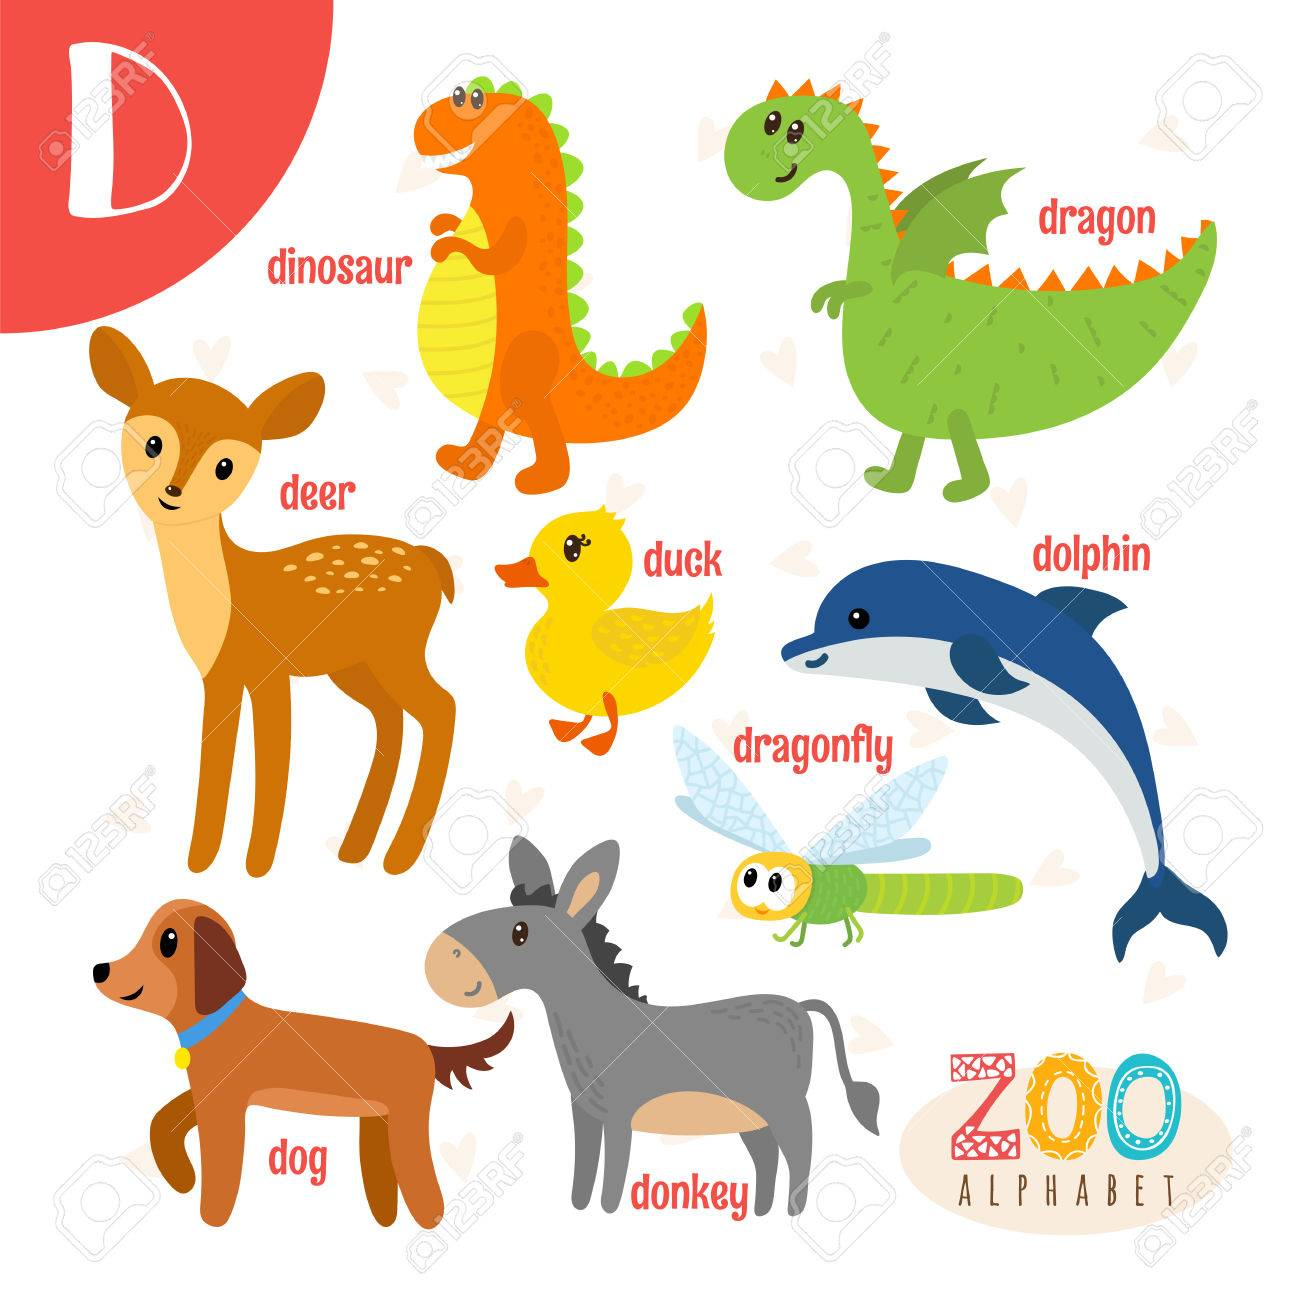 561c0542b Letter D. Cute animals. Funny cartoon animals . ABC book. illustration  Stock Vector